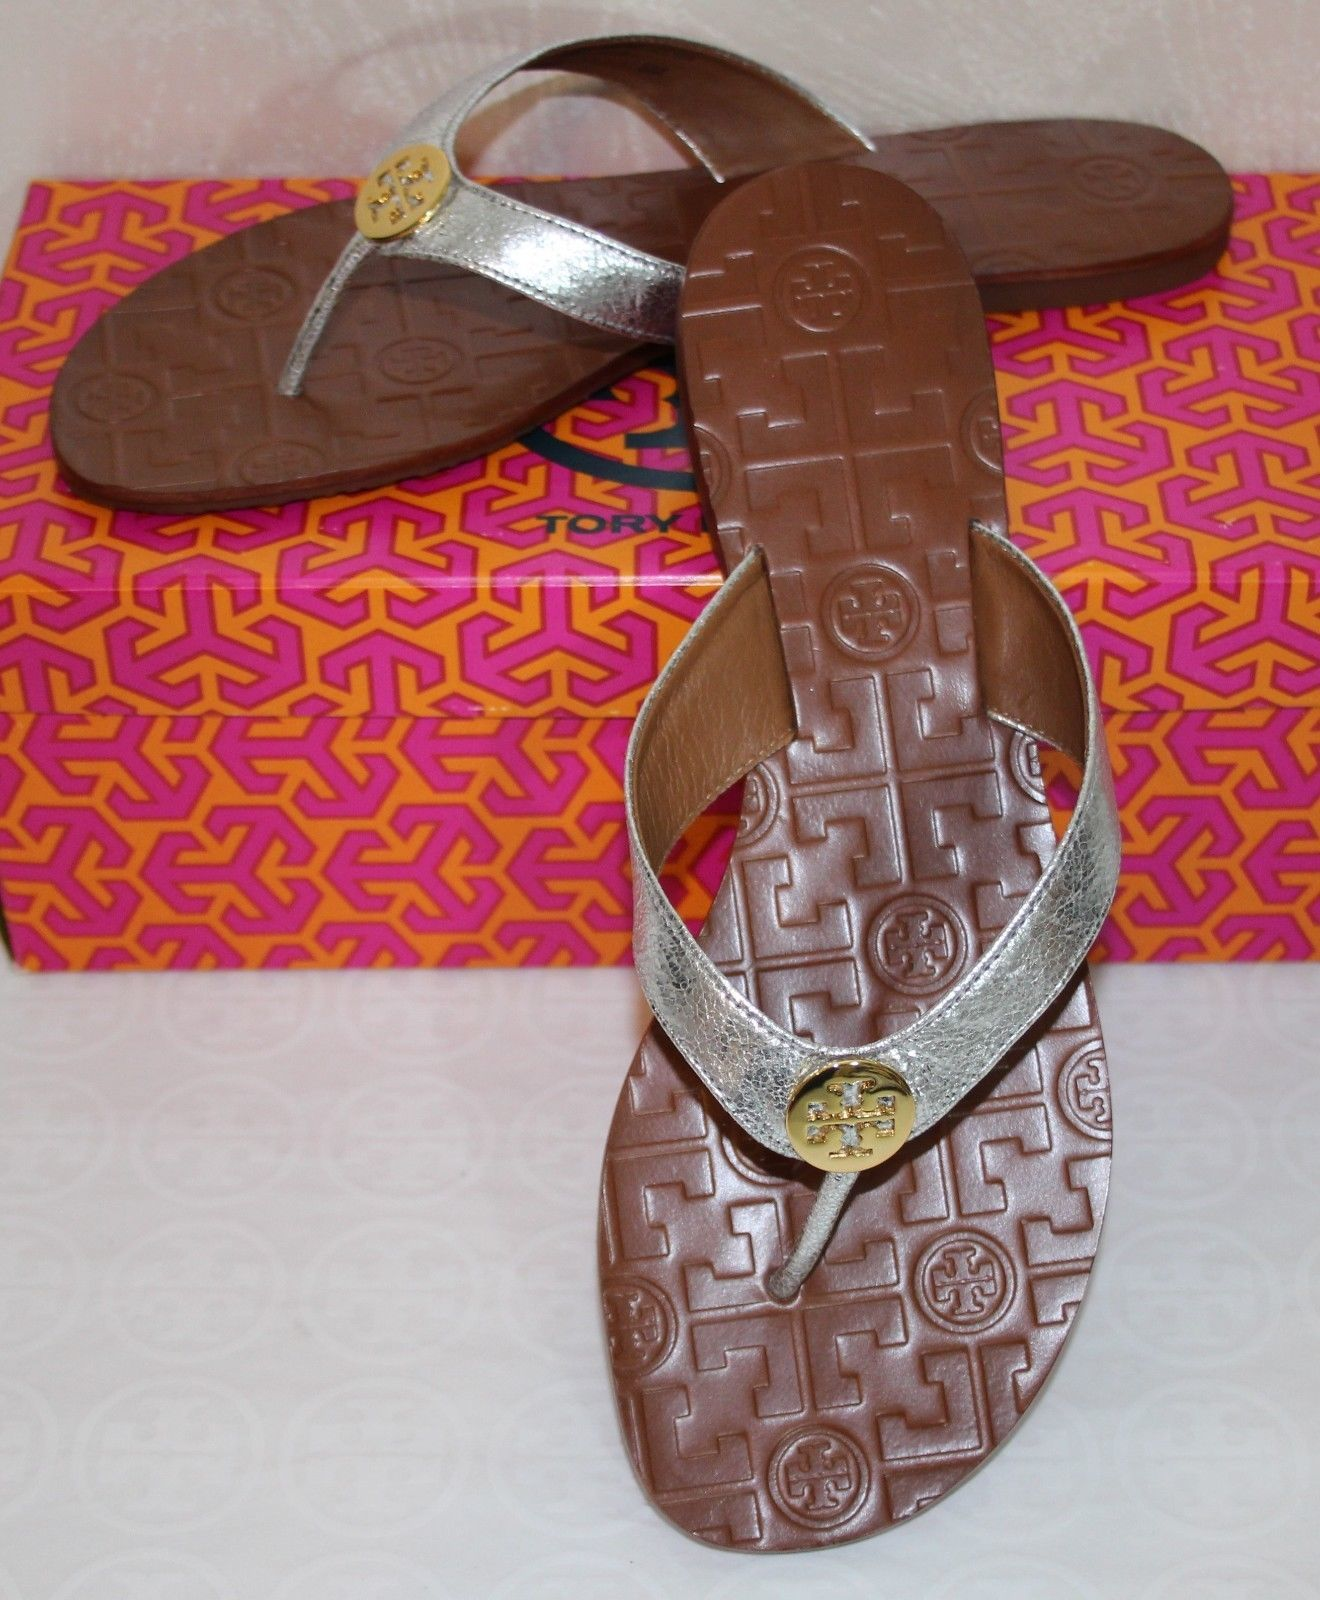 91c0ebed707 57. 57. Previous. Tory Burch Thora Size 8 Metallic Silver Leather Flat  Thong Sandals · Tory Burch ...